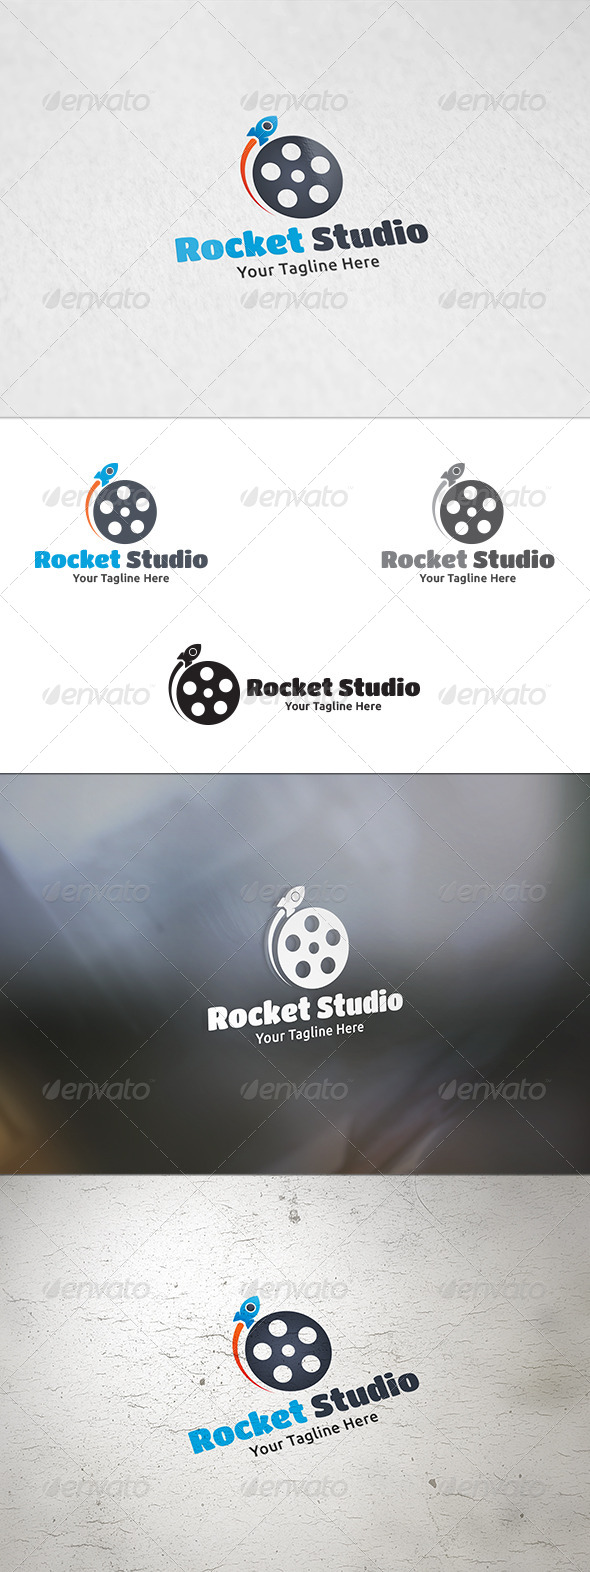 GraphicRiver Rocket Studio Logo Template 8683257